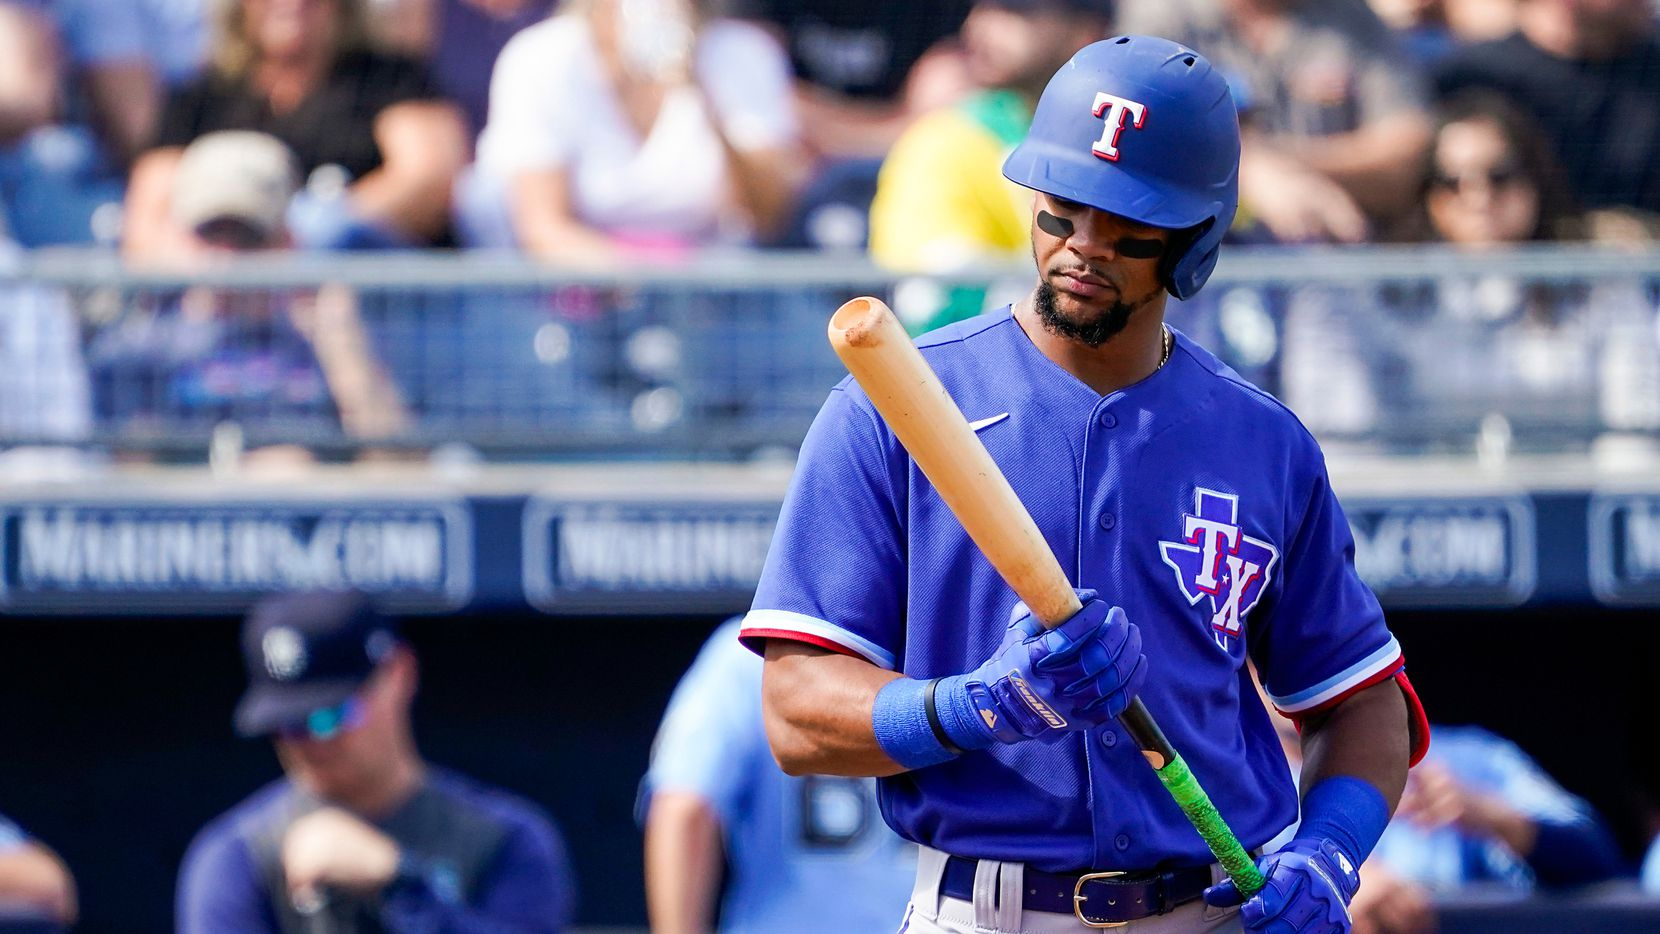 FILE — Texas Rangers outfielder Leody Taveras hits during the second inning of a spring training game against the Seattle Mariners at Peoria Sports Complex on Sunday, Feb. 23, 2020, in Peoria, Ariz.